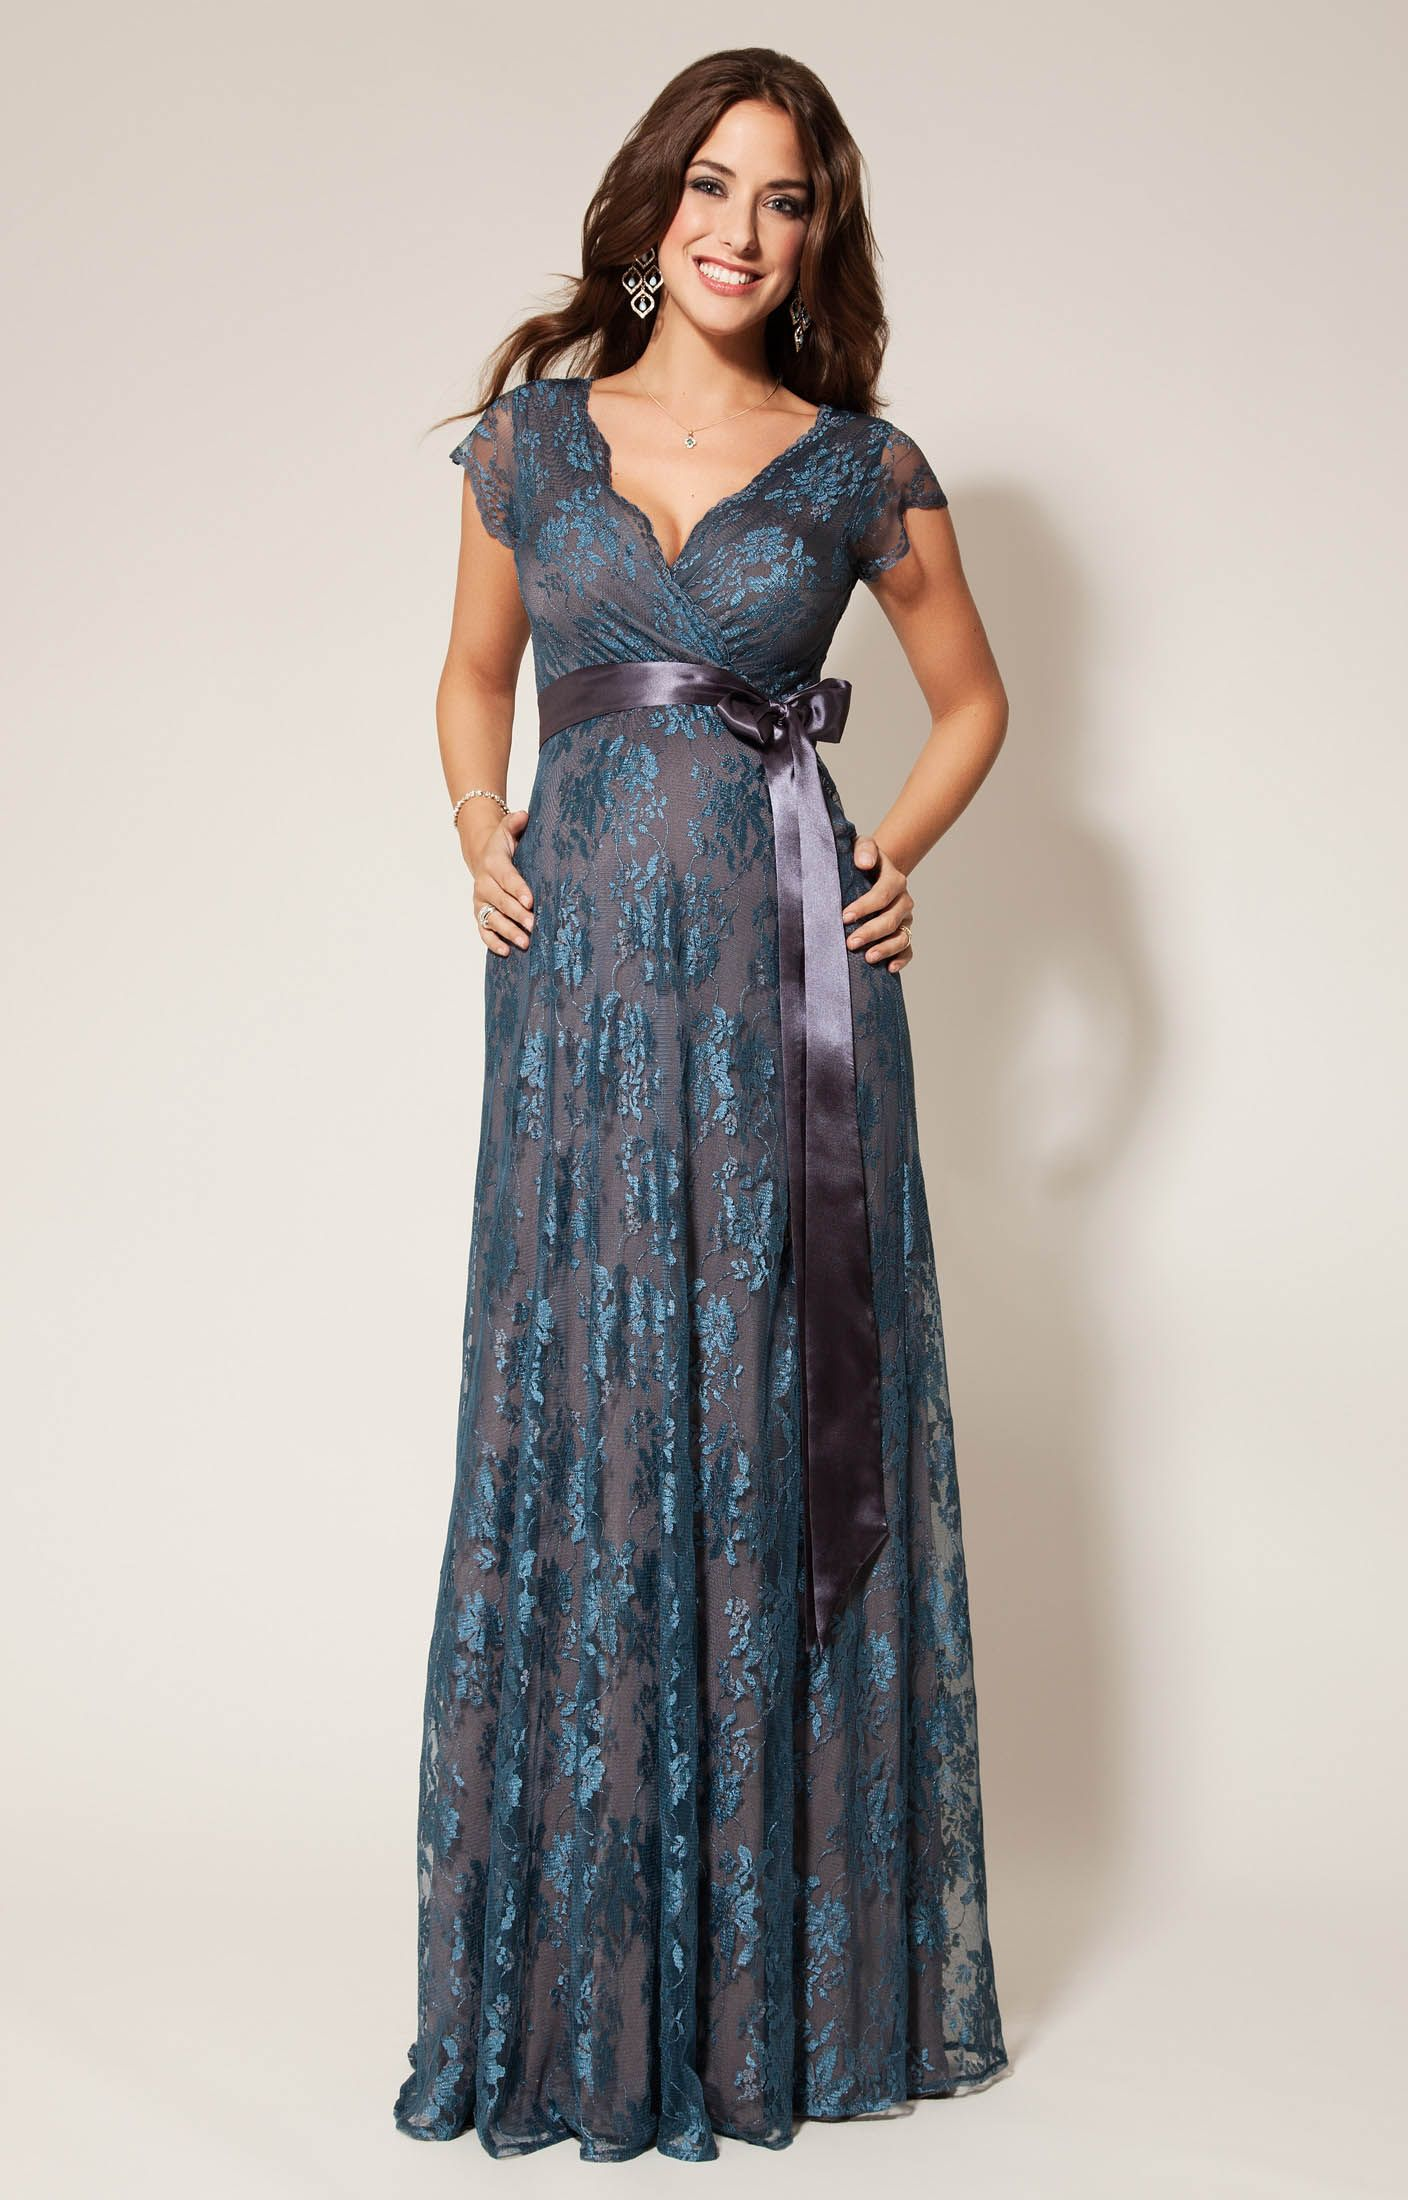 Eden Maternity Gown Long (Caspian Blue) by Tiffany Rose d0bc86697ad0